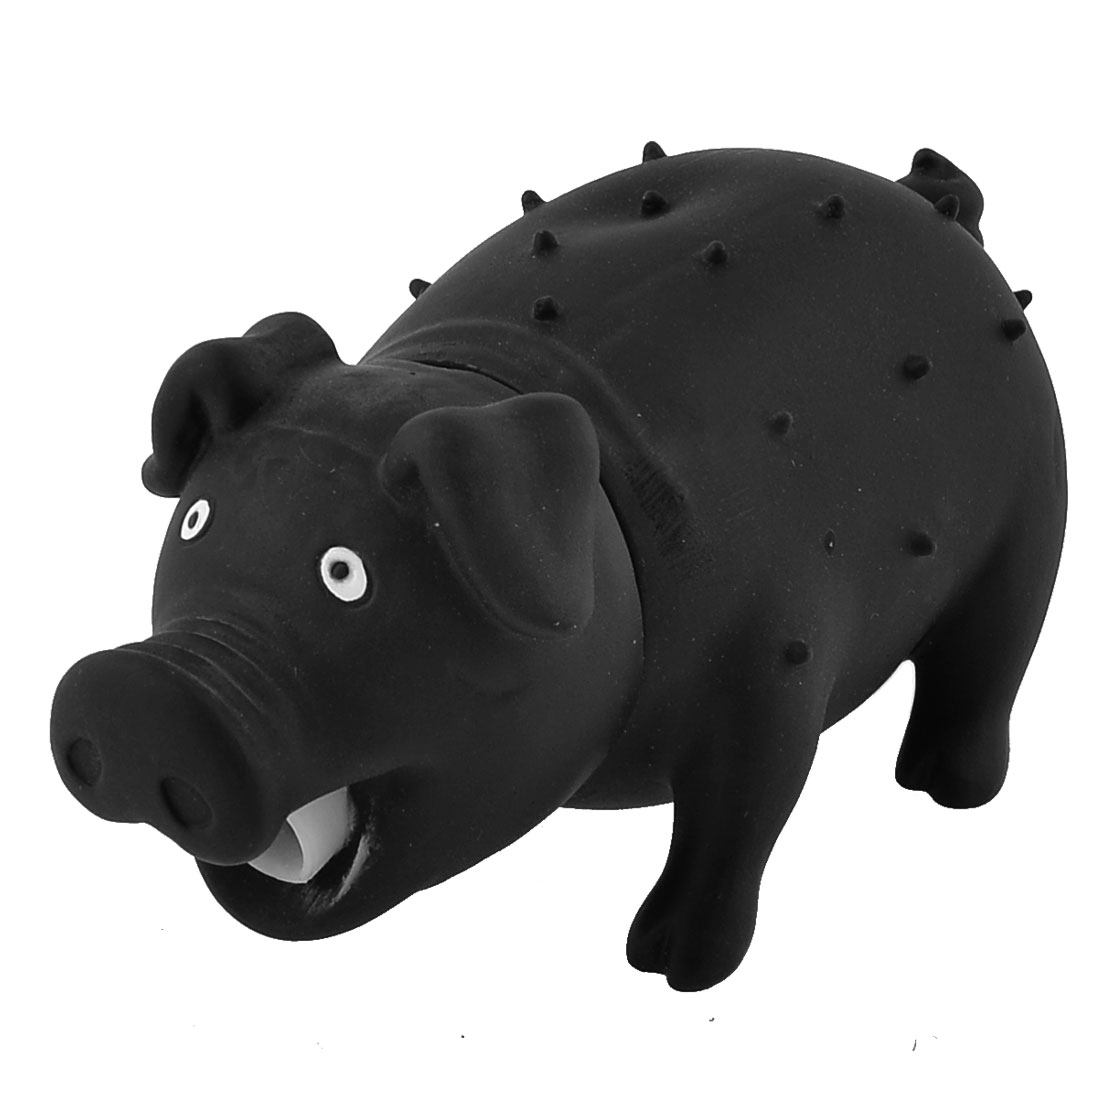 Black Pig Shaped Pet Doggie Dog Cat Chew Training Squeaky Sounding Toy